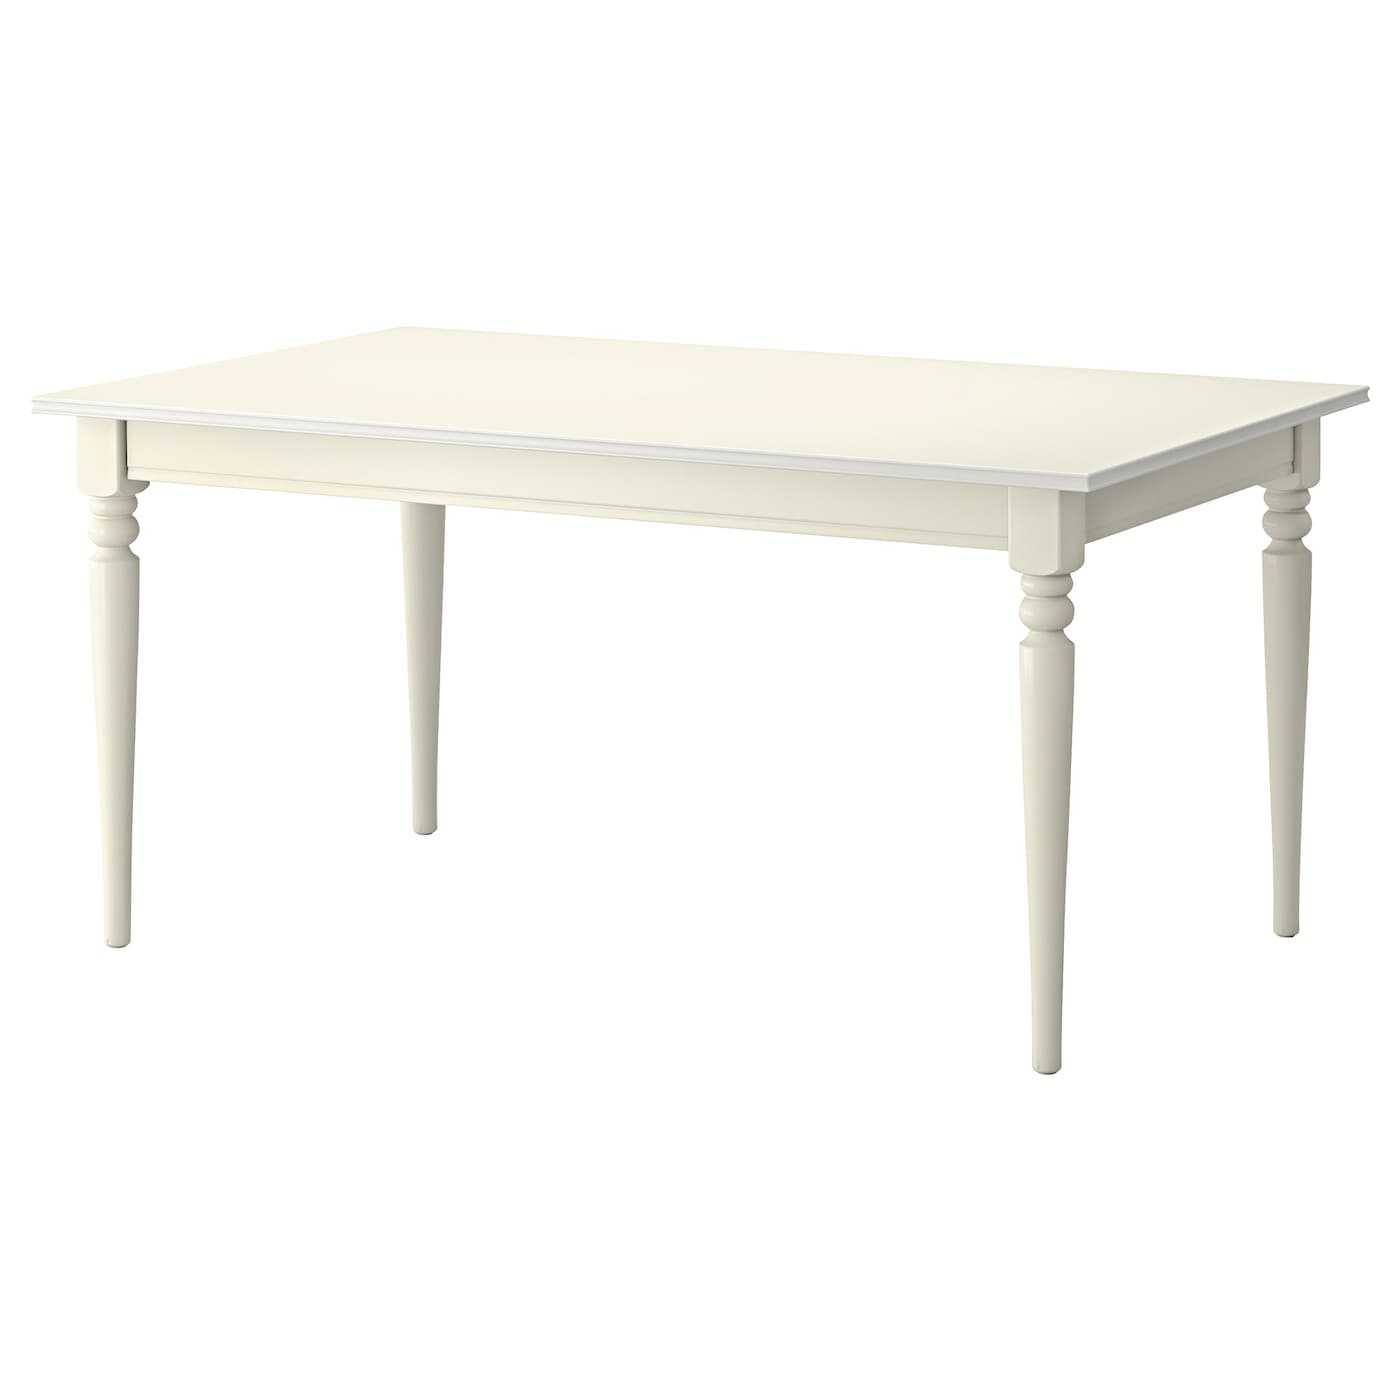 Ikea tables dining tables Dining bench ikea